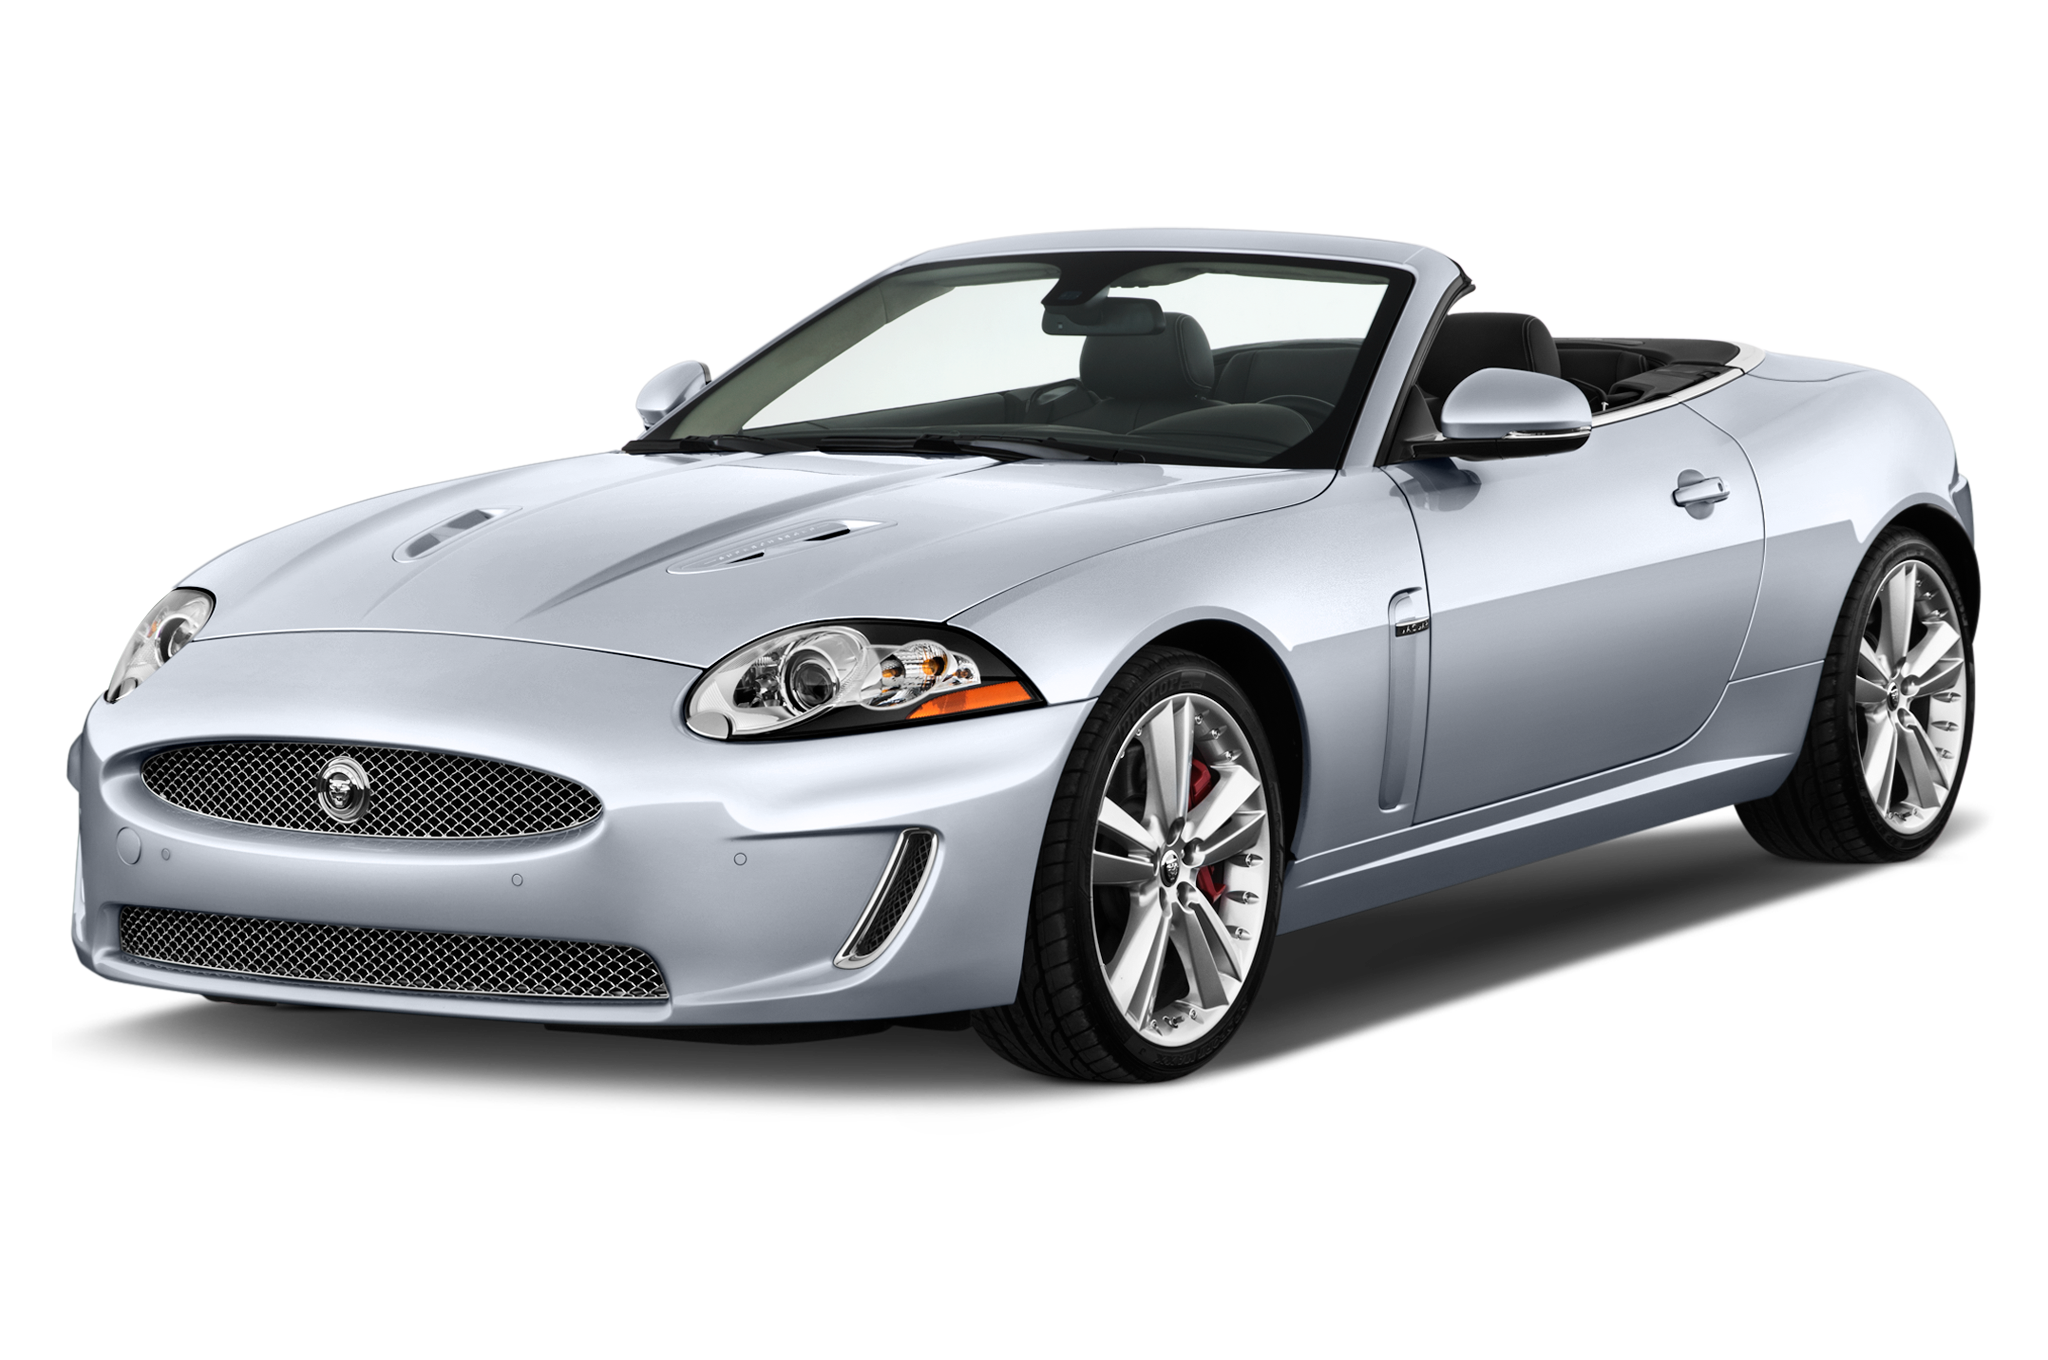 2011 Jaguar XK-Series